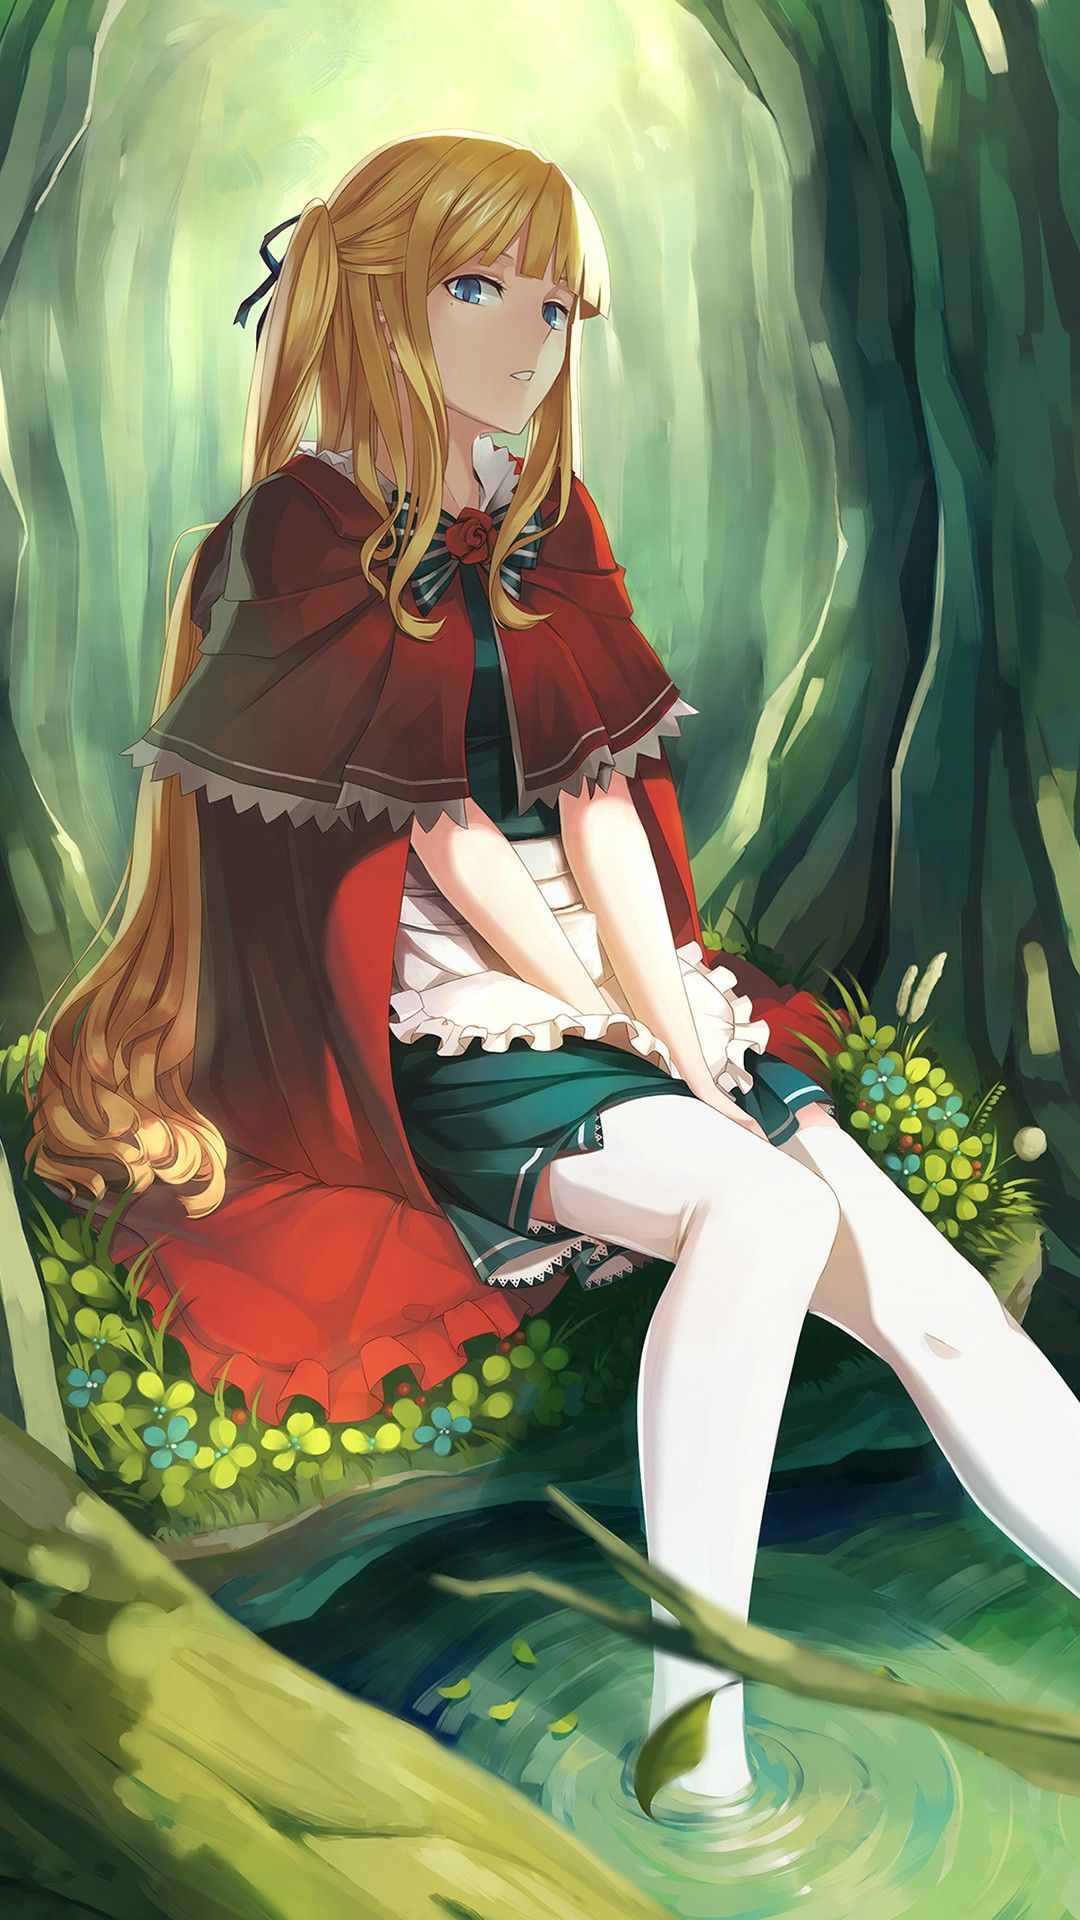 Pin By Julia On Hd Wallpapers In 2019 Pinterest Anime Beautiful